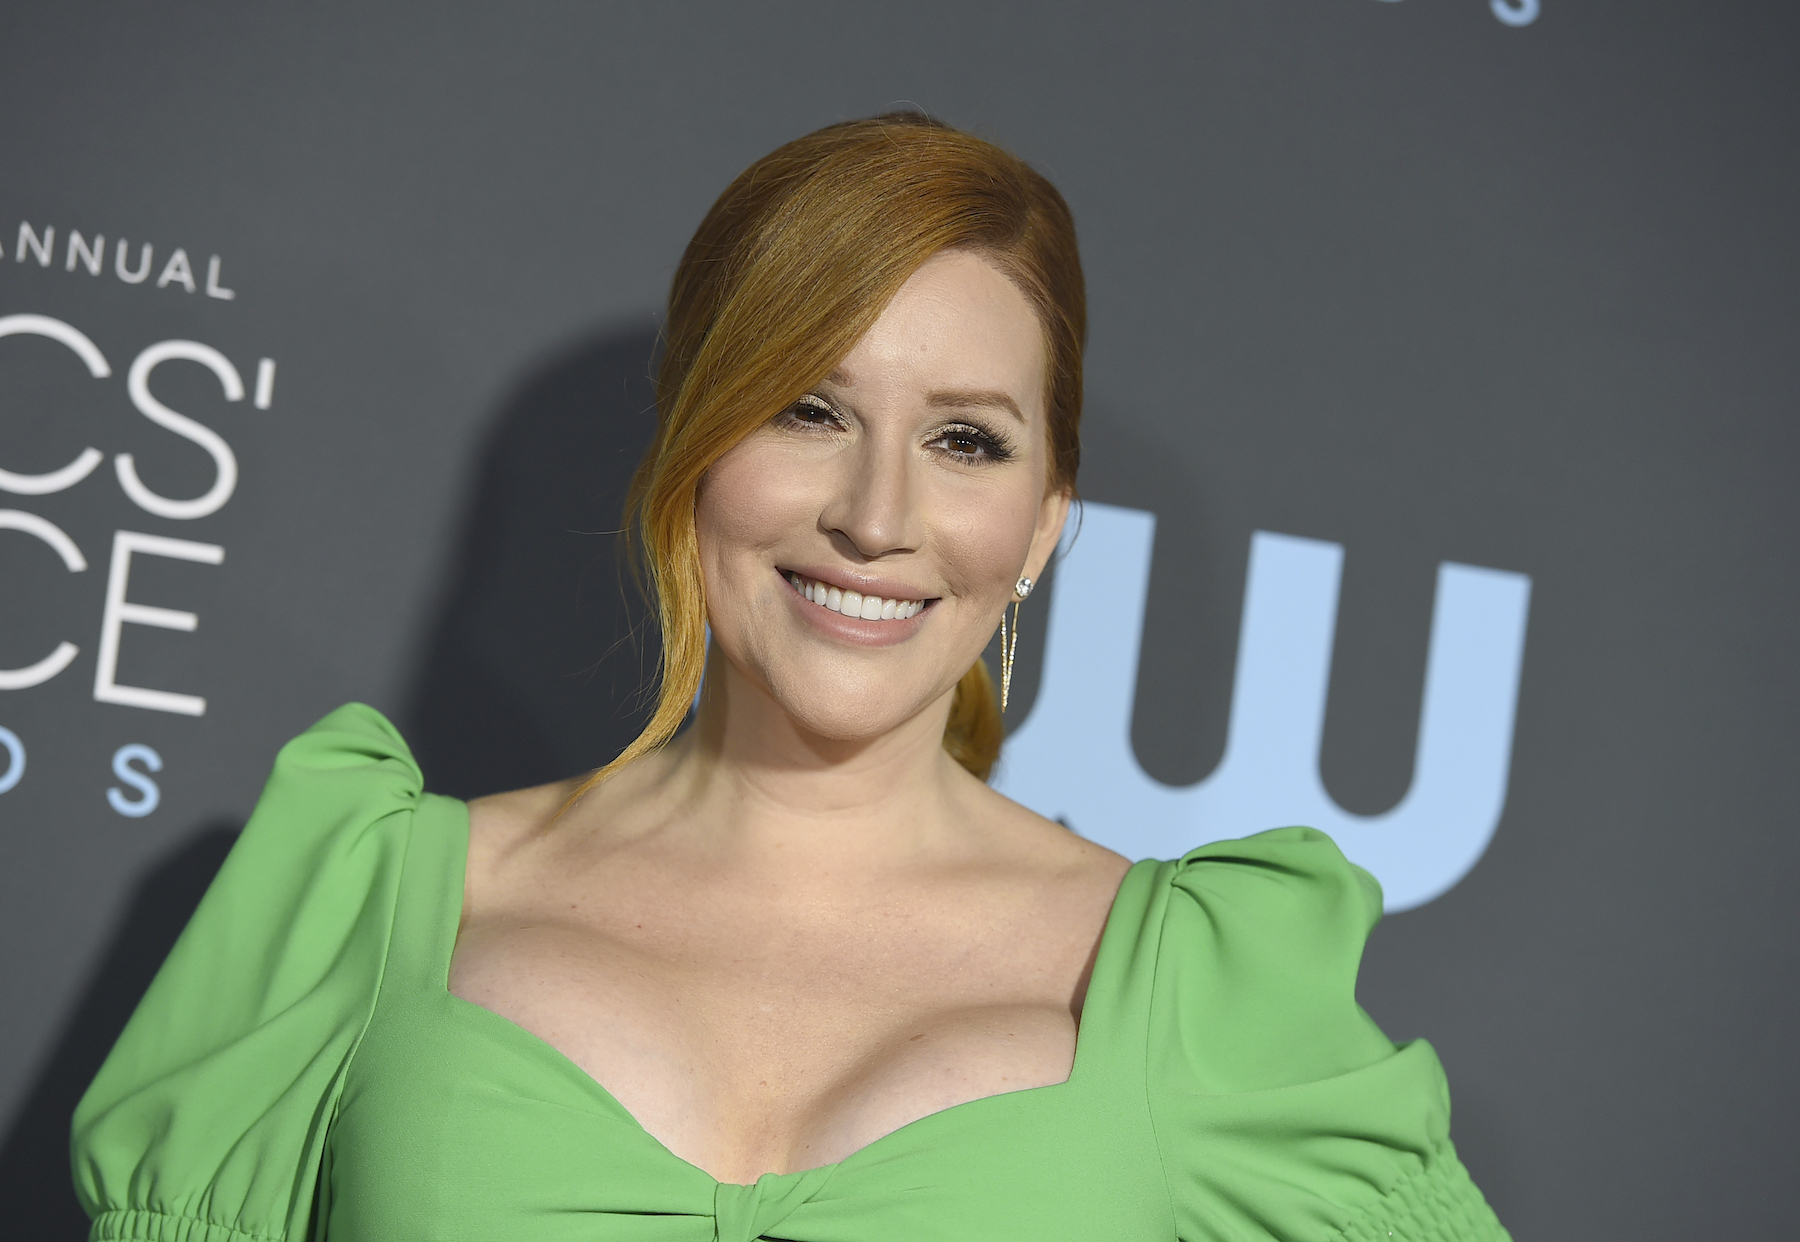 <div class='meta'><div class='origin-logo' data-origin='AP'></div><span class='caption-text' data-credit='Jordan Strauss/Invision/AP'>Our Lady J arrives at the 24th annual Critics' Choice Awards on Sunday, Jan. 13, 2019, at the Barker Hangar in Santa Monica, Calif.</span></div>